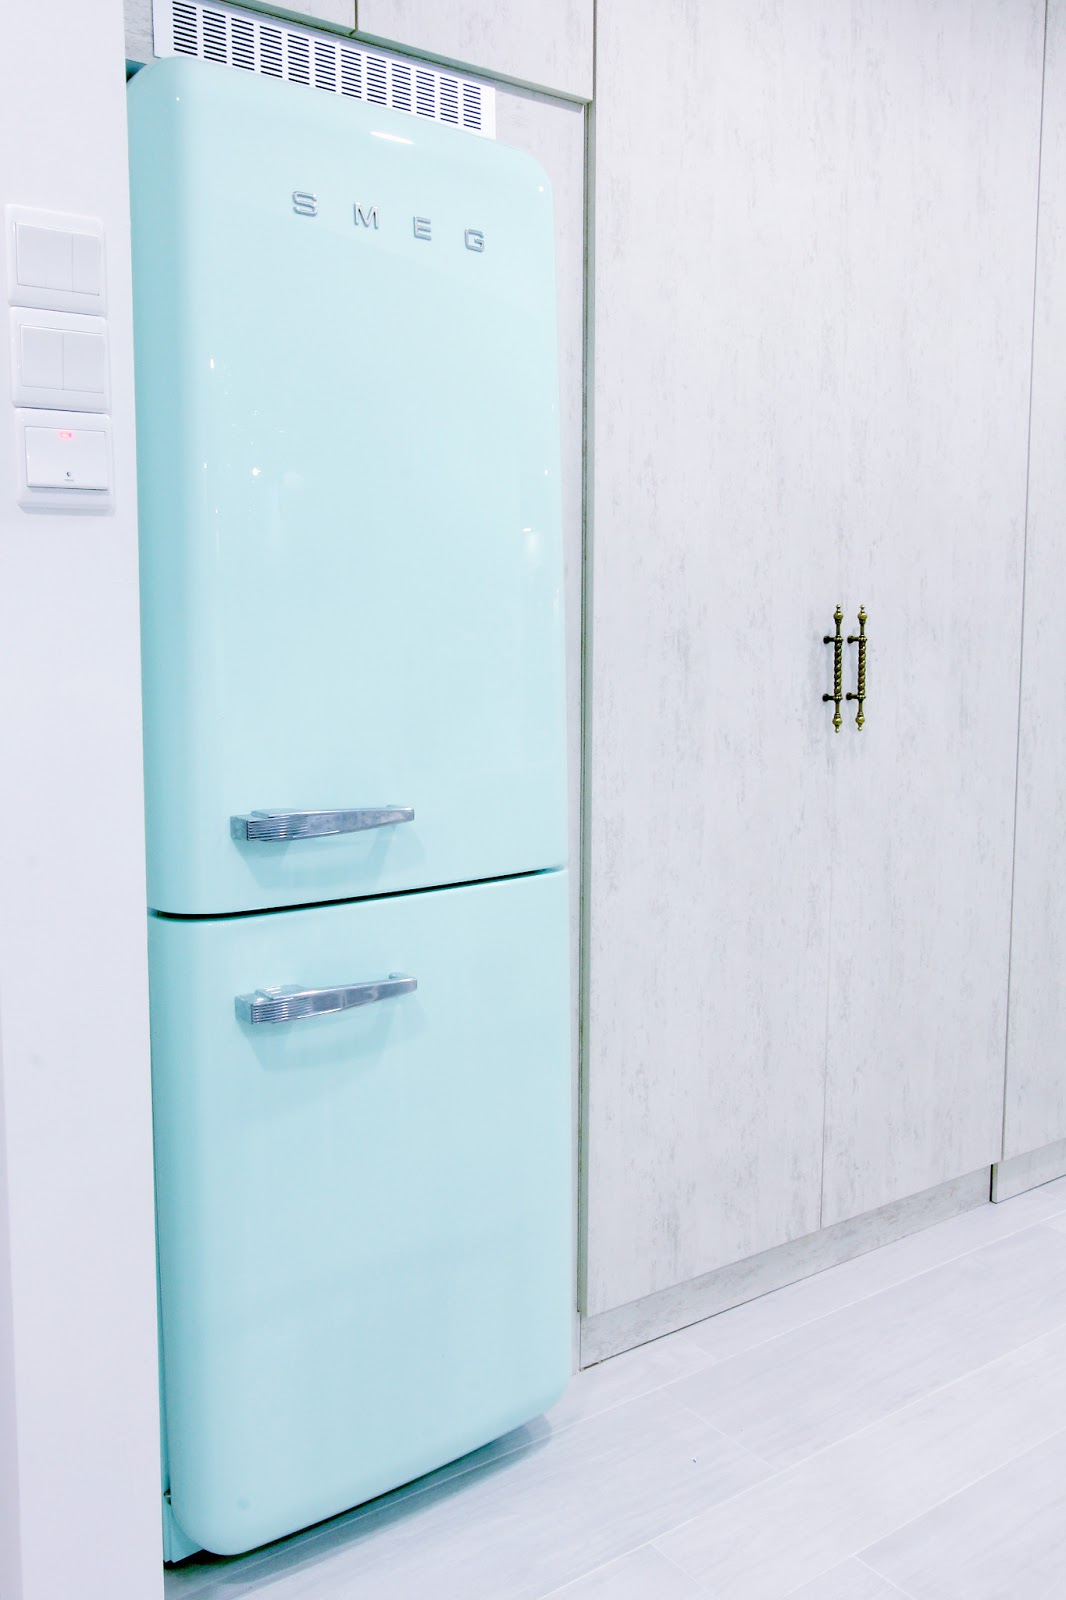 Smeg Refrigerator Inside View My gorgeous mint green smegSmeg Refrigerator Inside View